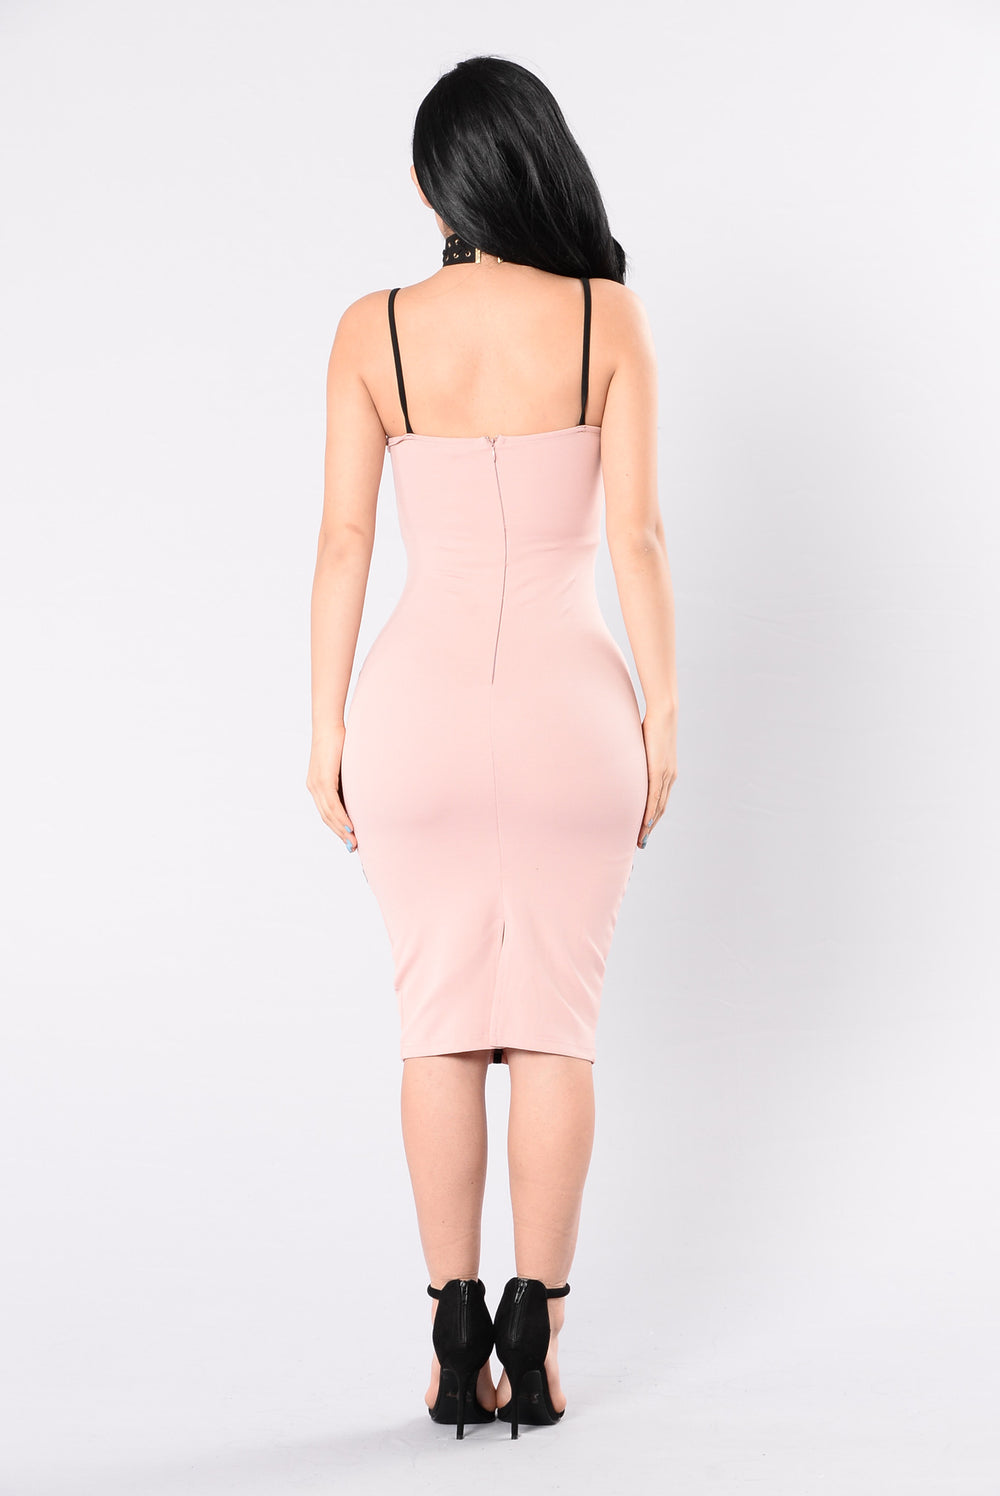 What A Fox Dress - Mauve/Black